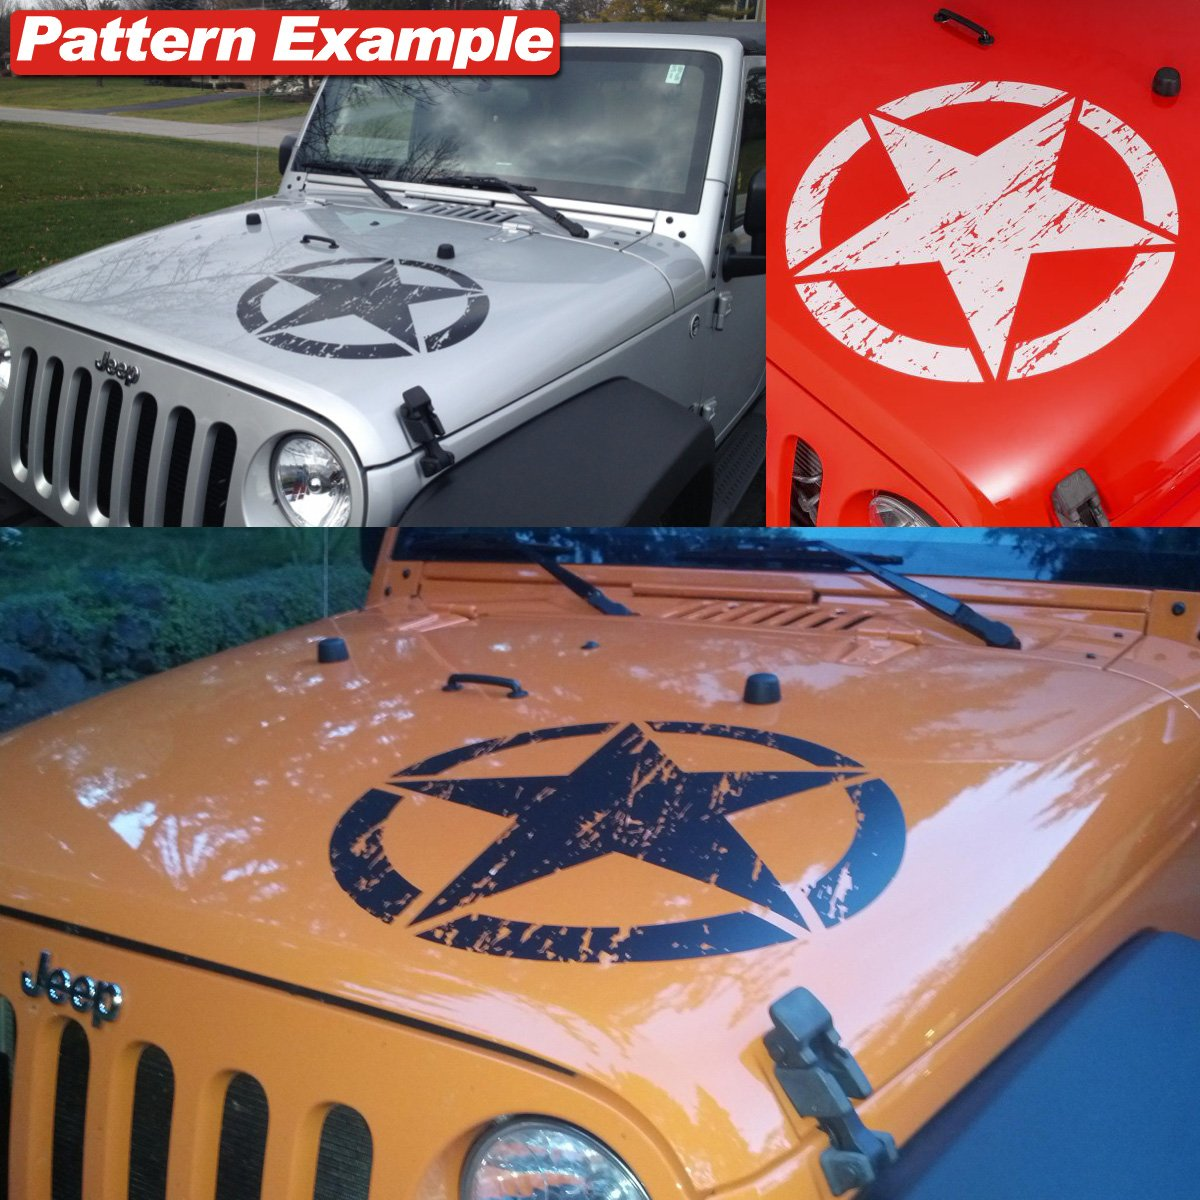 Amazoncom Jeep Wrangler Freedom Edition Star Hood Decal - Jeep hood decalsgraphics for jeep wrangler hood decals and graphics www